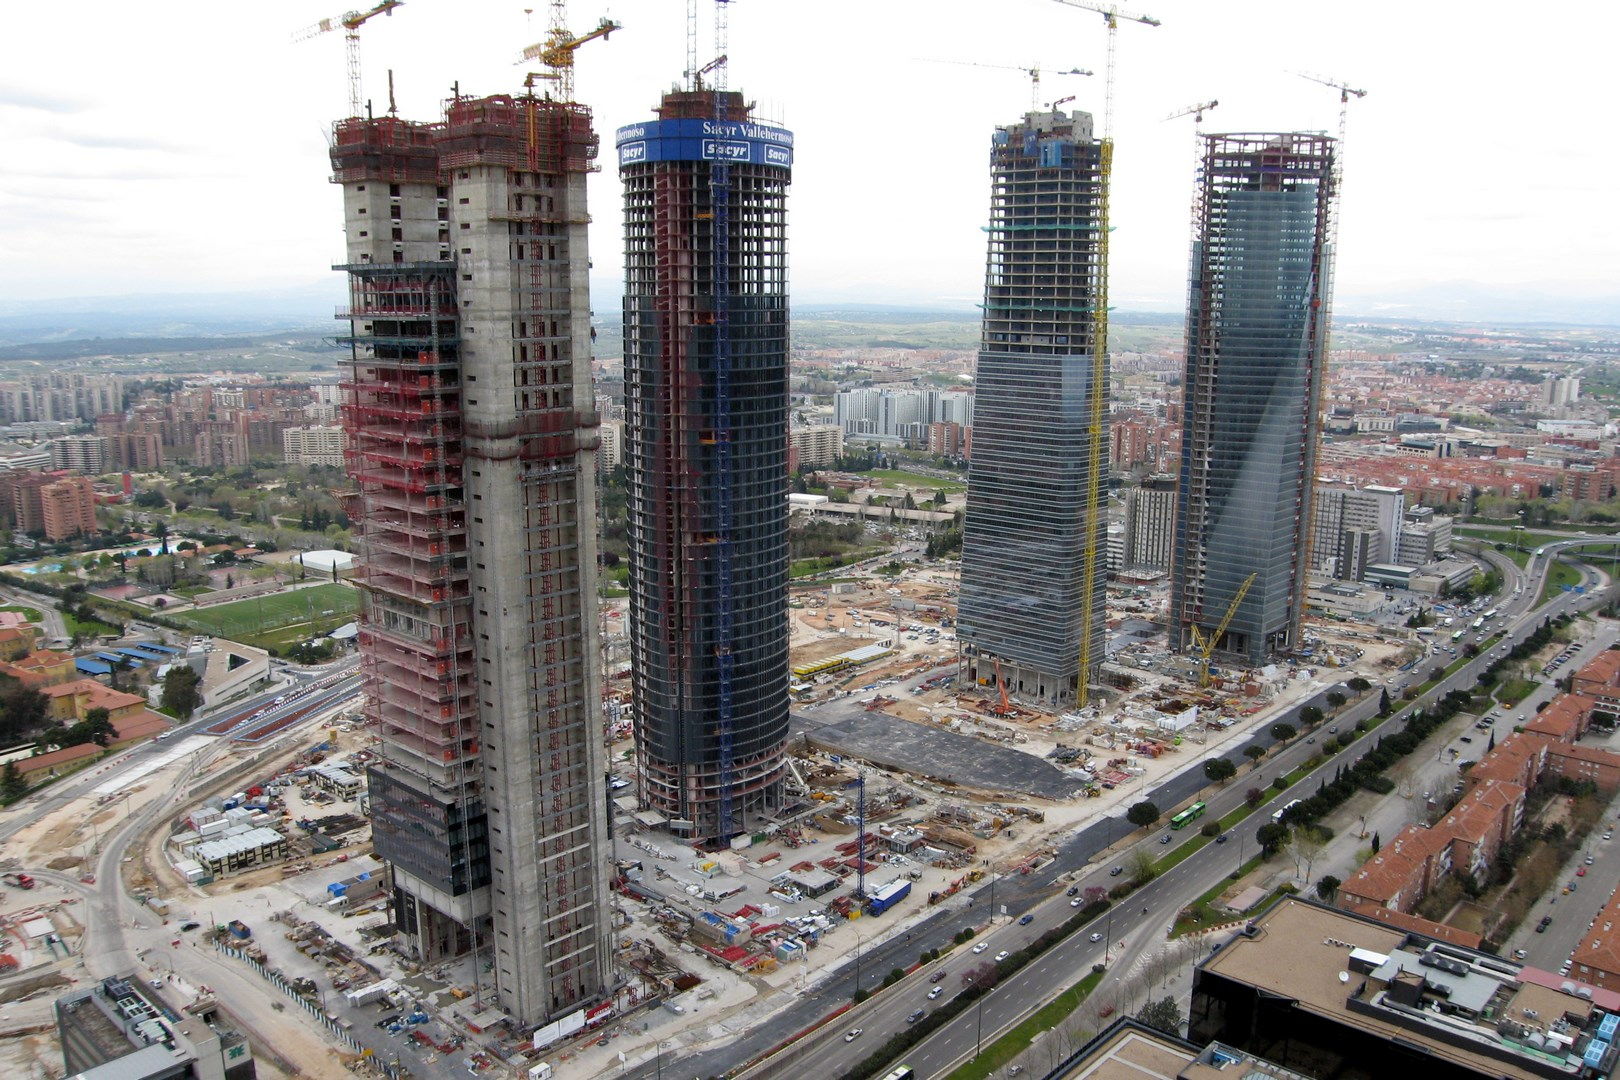 The towers under construction